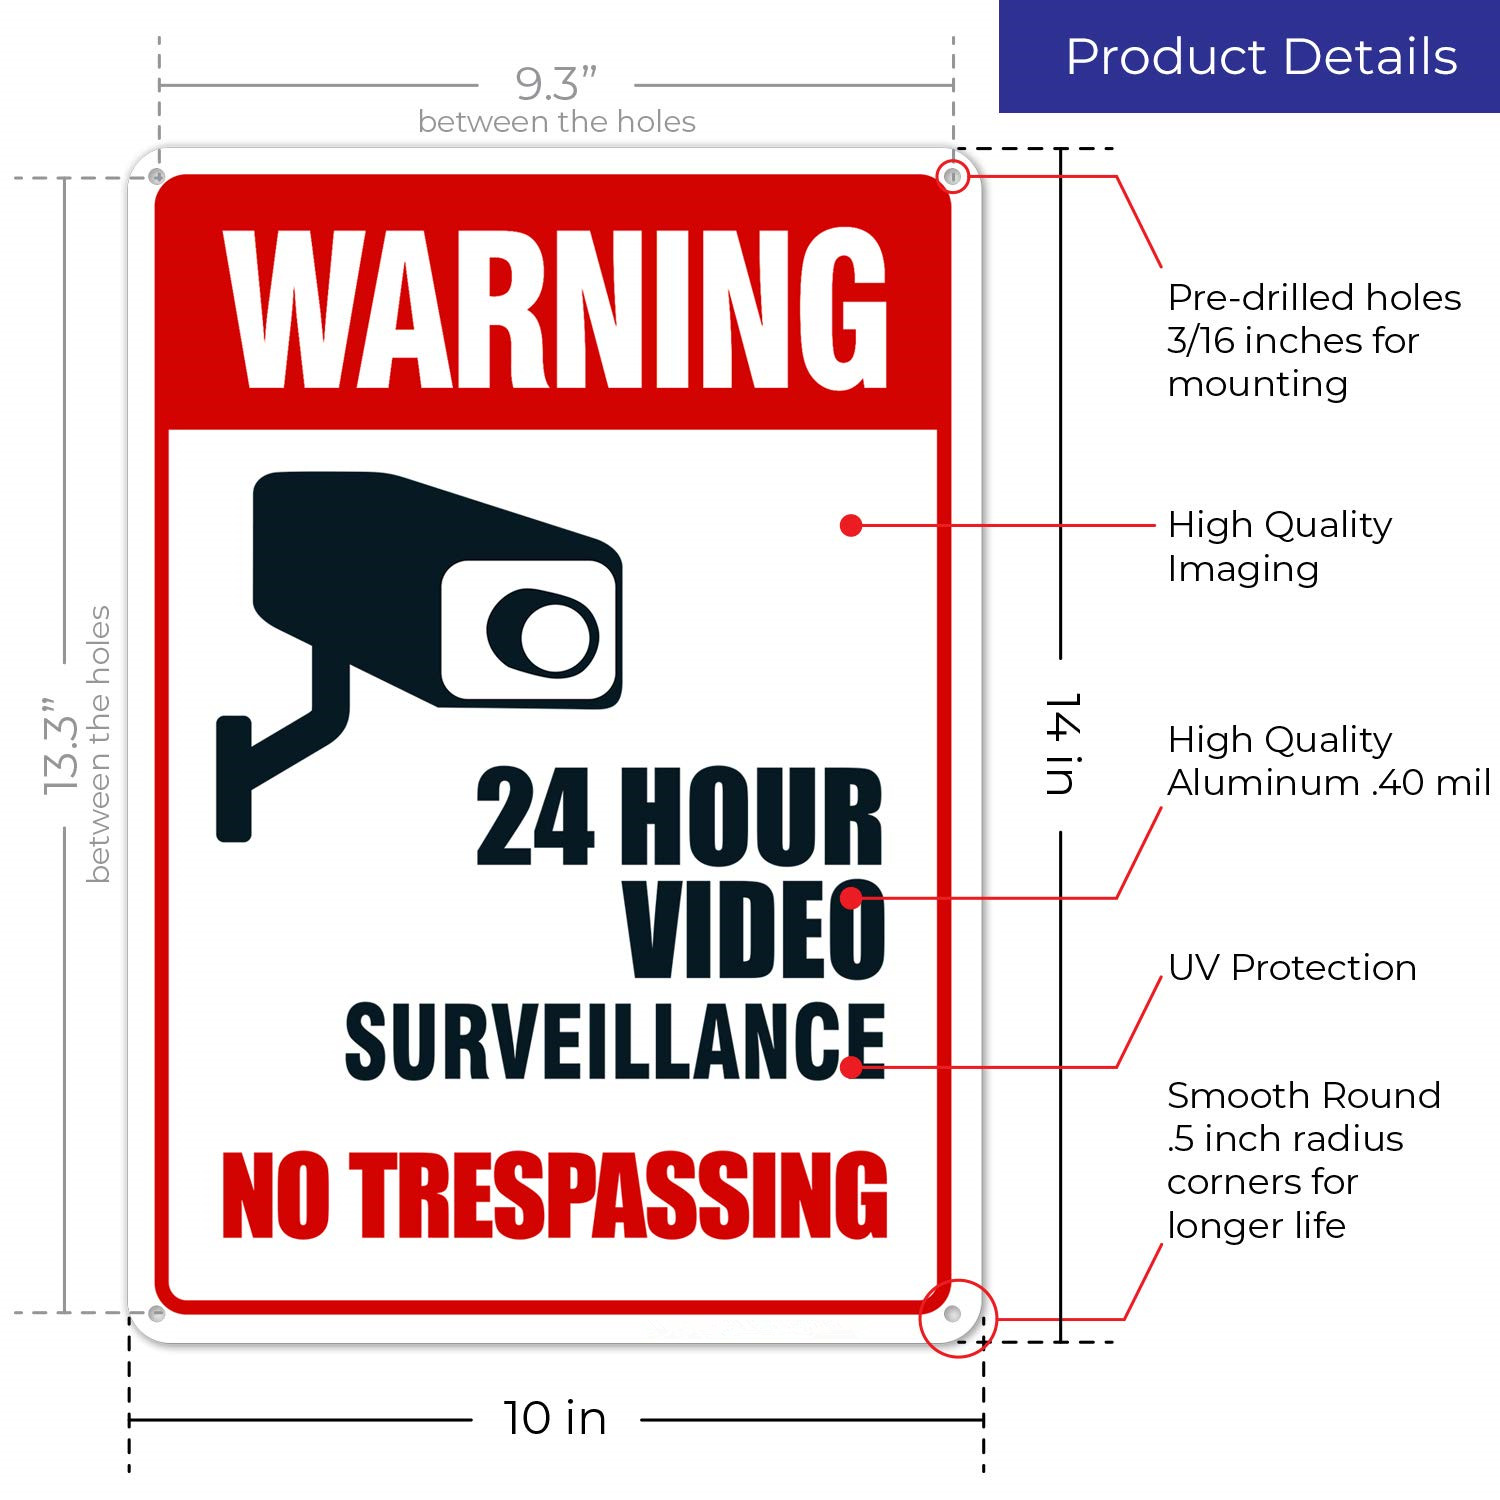 OEM Aluminum Reflective Warning Signs Video Surveillance No Trespassing Sign Metal